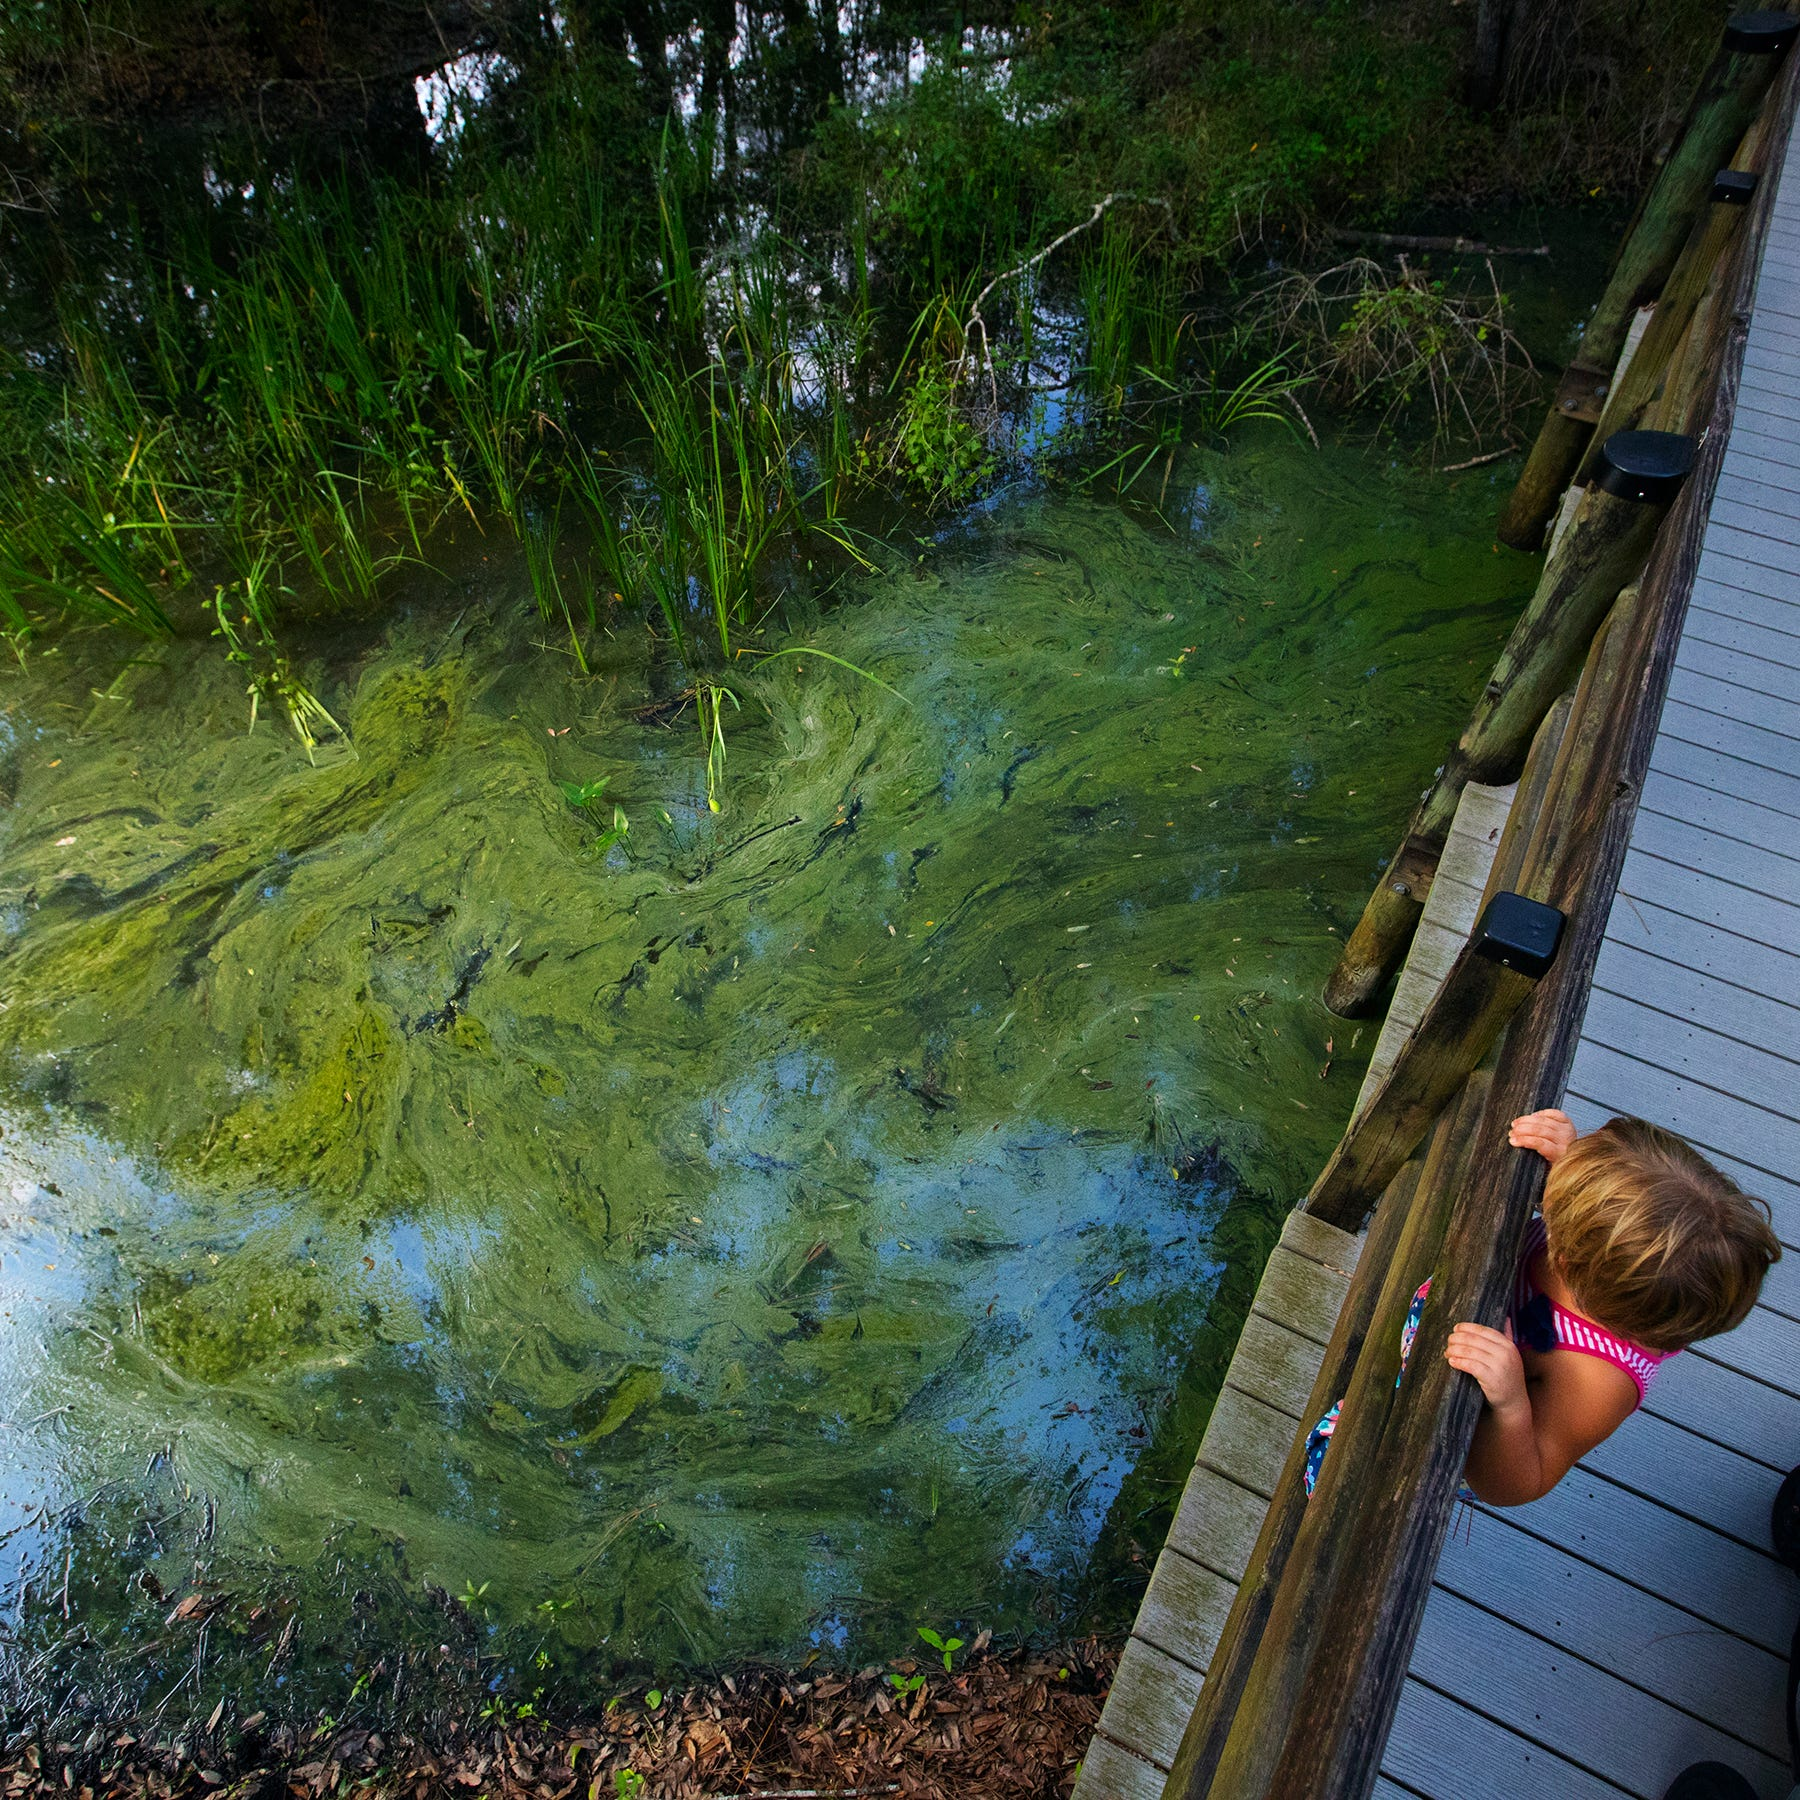 Algae bloom appears at Six Mile Cypress Slough Preserve in Fort Myers